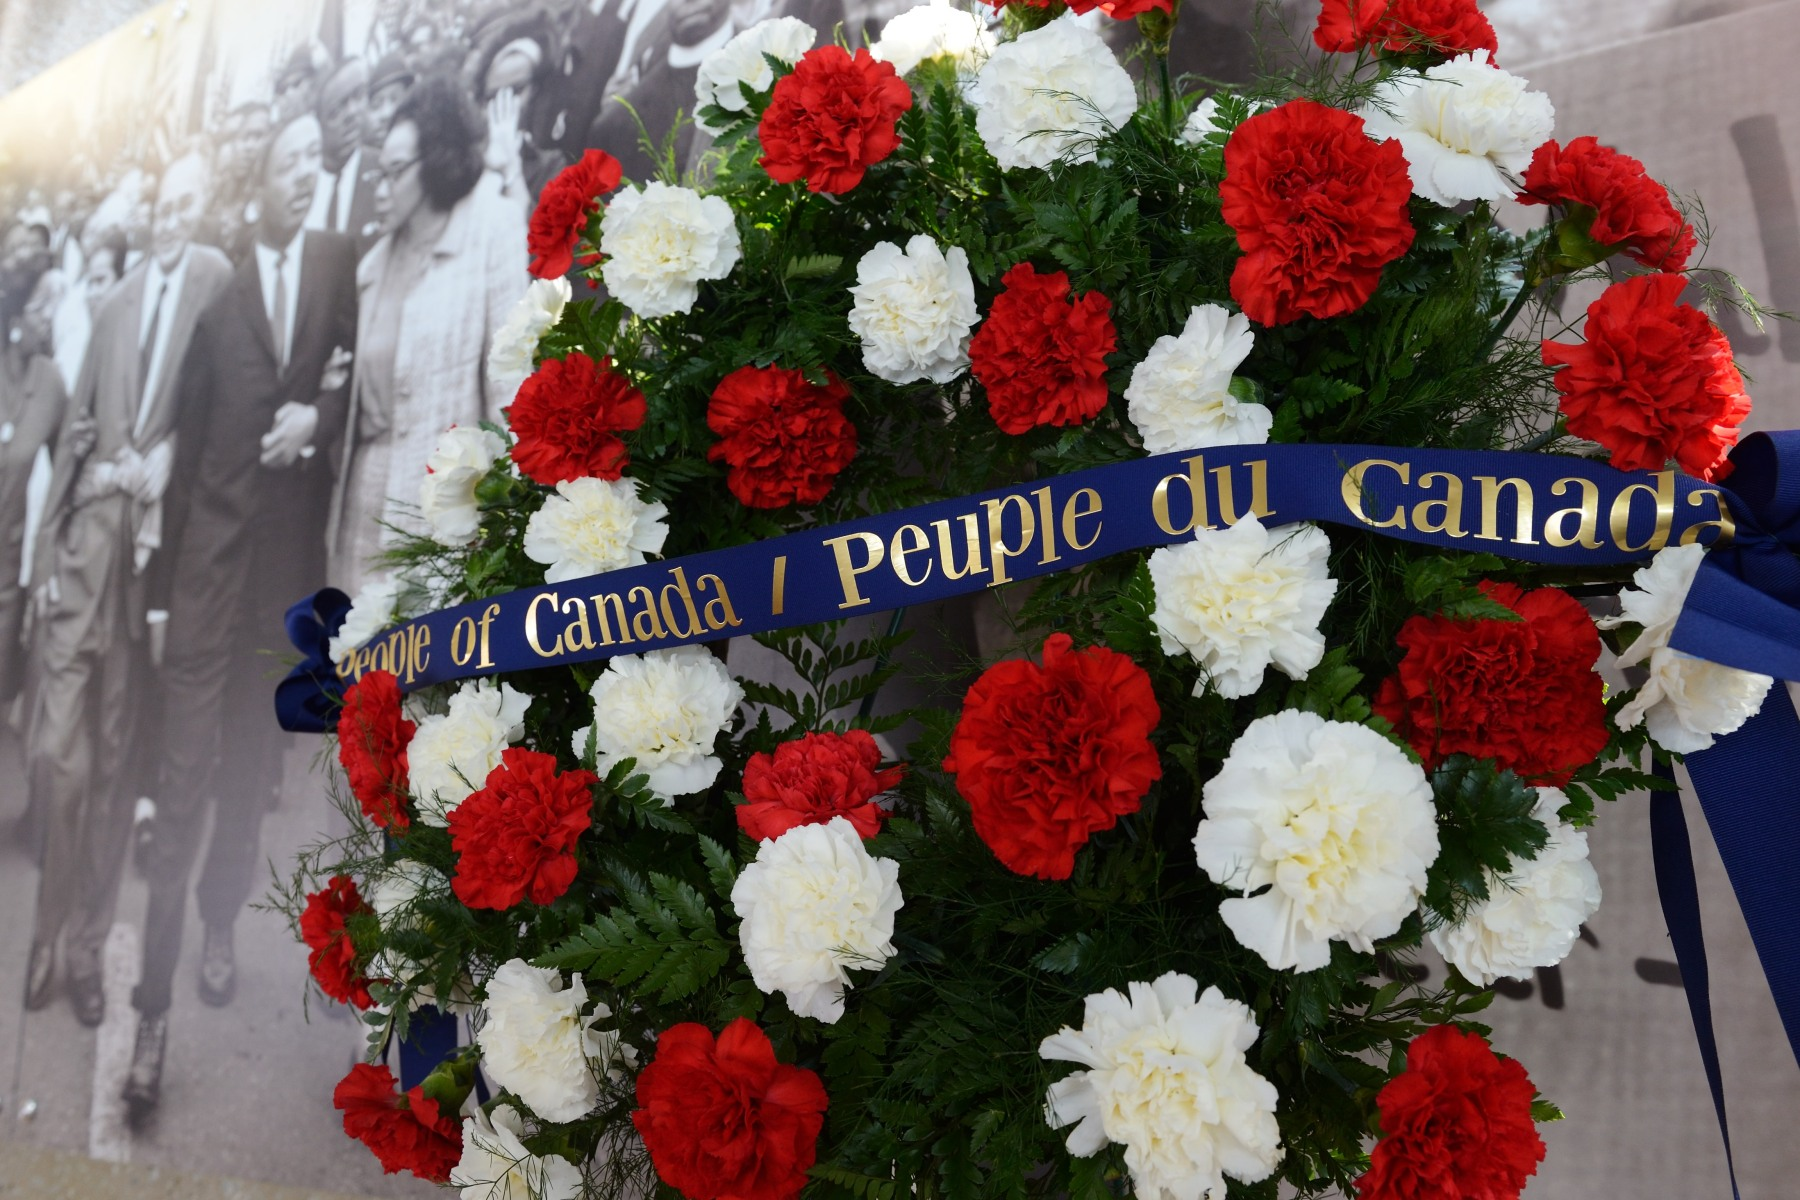 The wreath laid by the Governor General shows Canada's solidarity towards the civil rights movement. Martin Luther King Jr. dreamt that all inhabitants of the United States would be judged by their personal qualities and not by the colour of their skin.